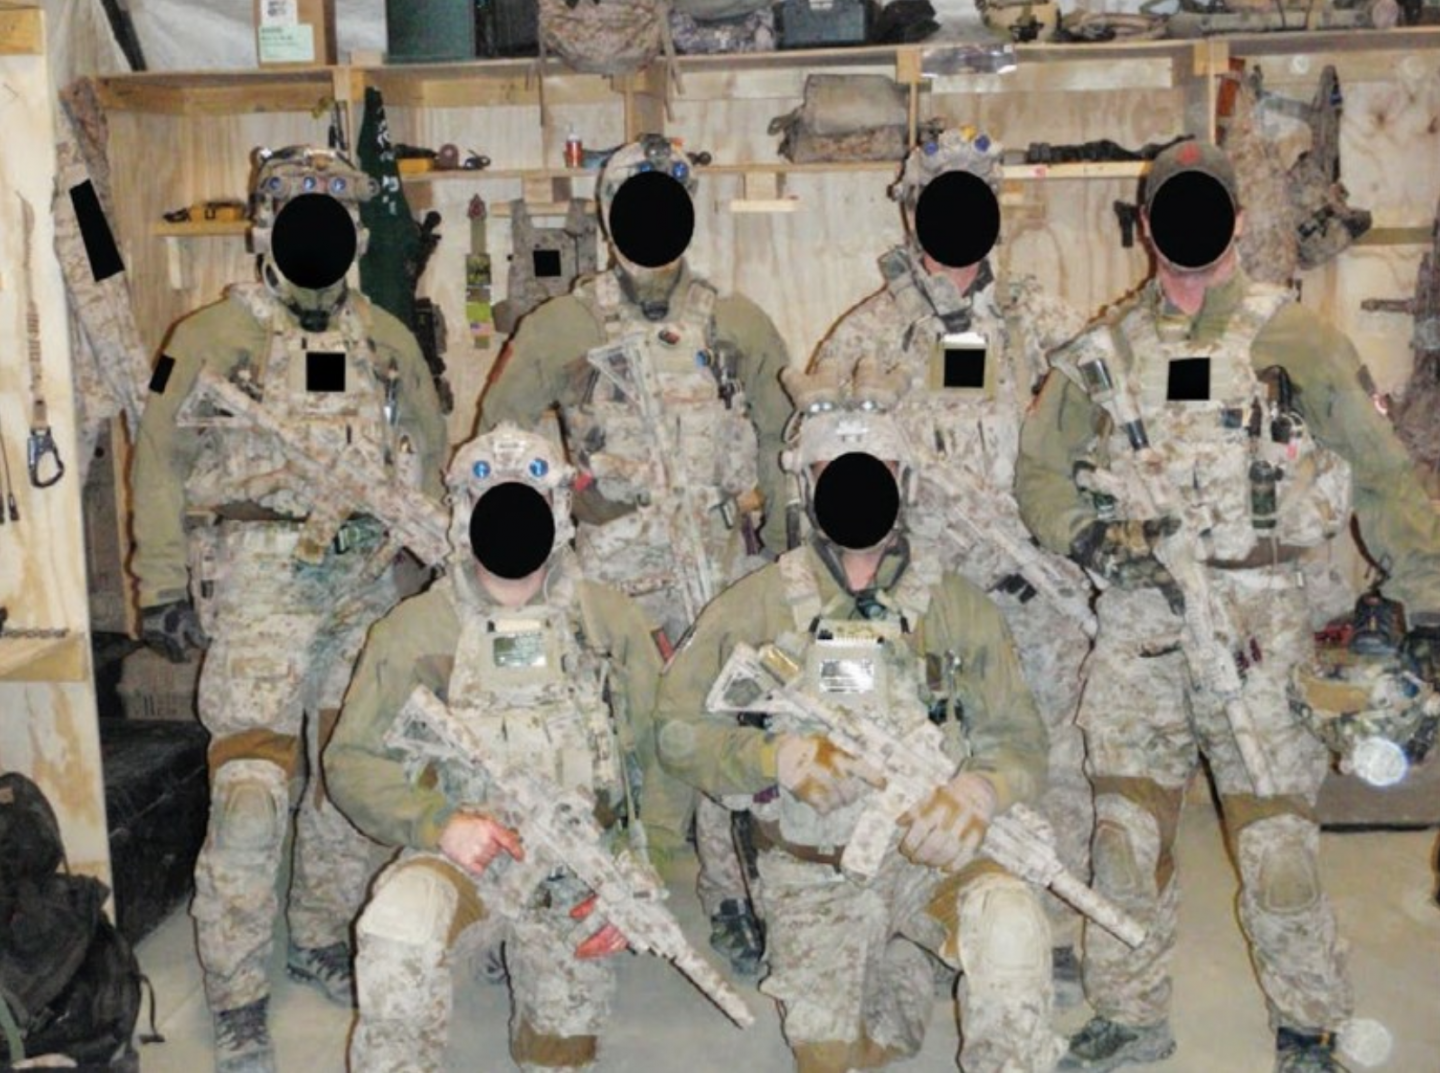 Photo of Seal Team 6 with their faced blacked out taken during the May 2, 2011 raid on Osama bin Laden's compound